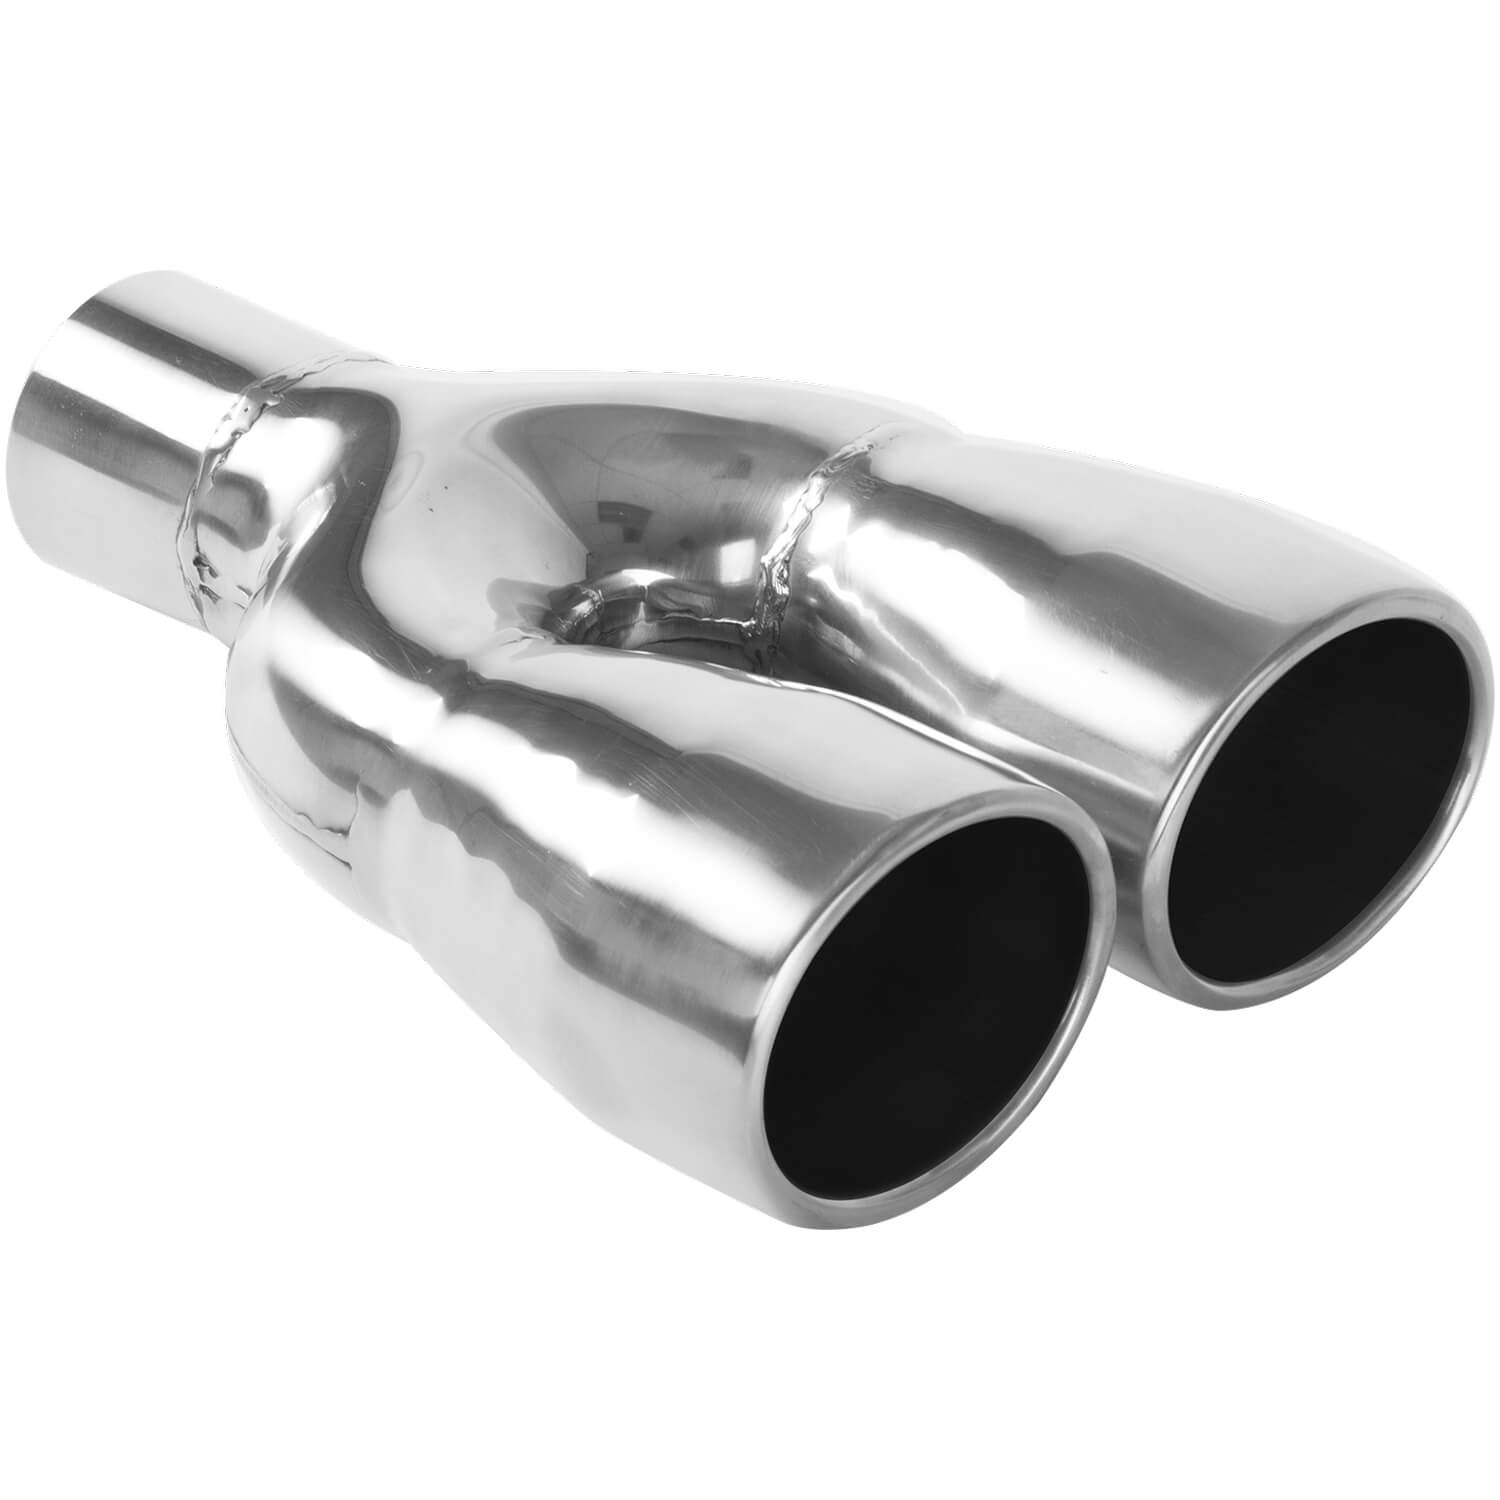 Magnaflow 35169 - Magnaflow Polished Stainless Steel Weld-On Dual Exhaust Tips